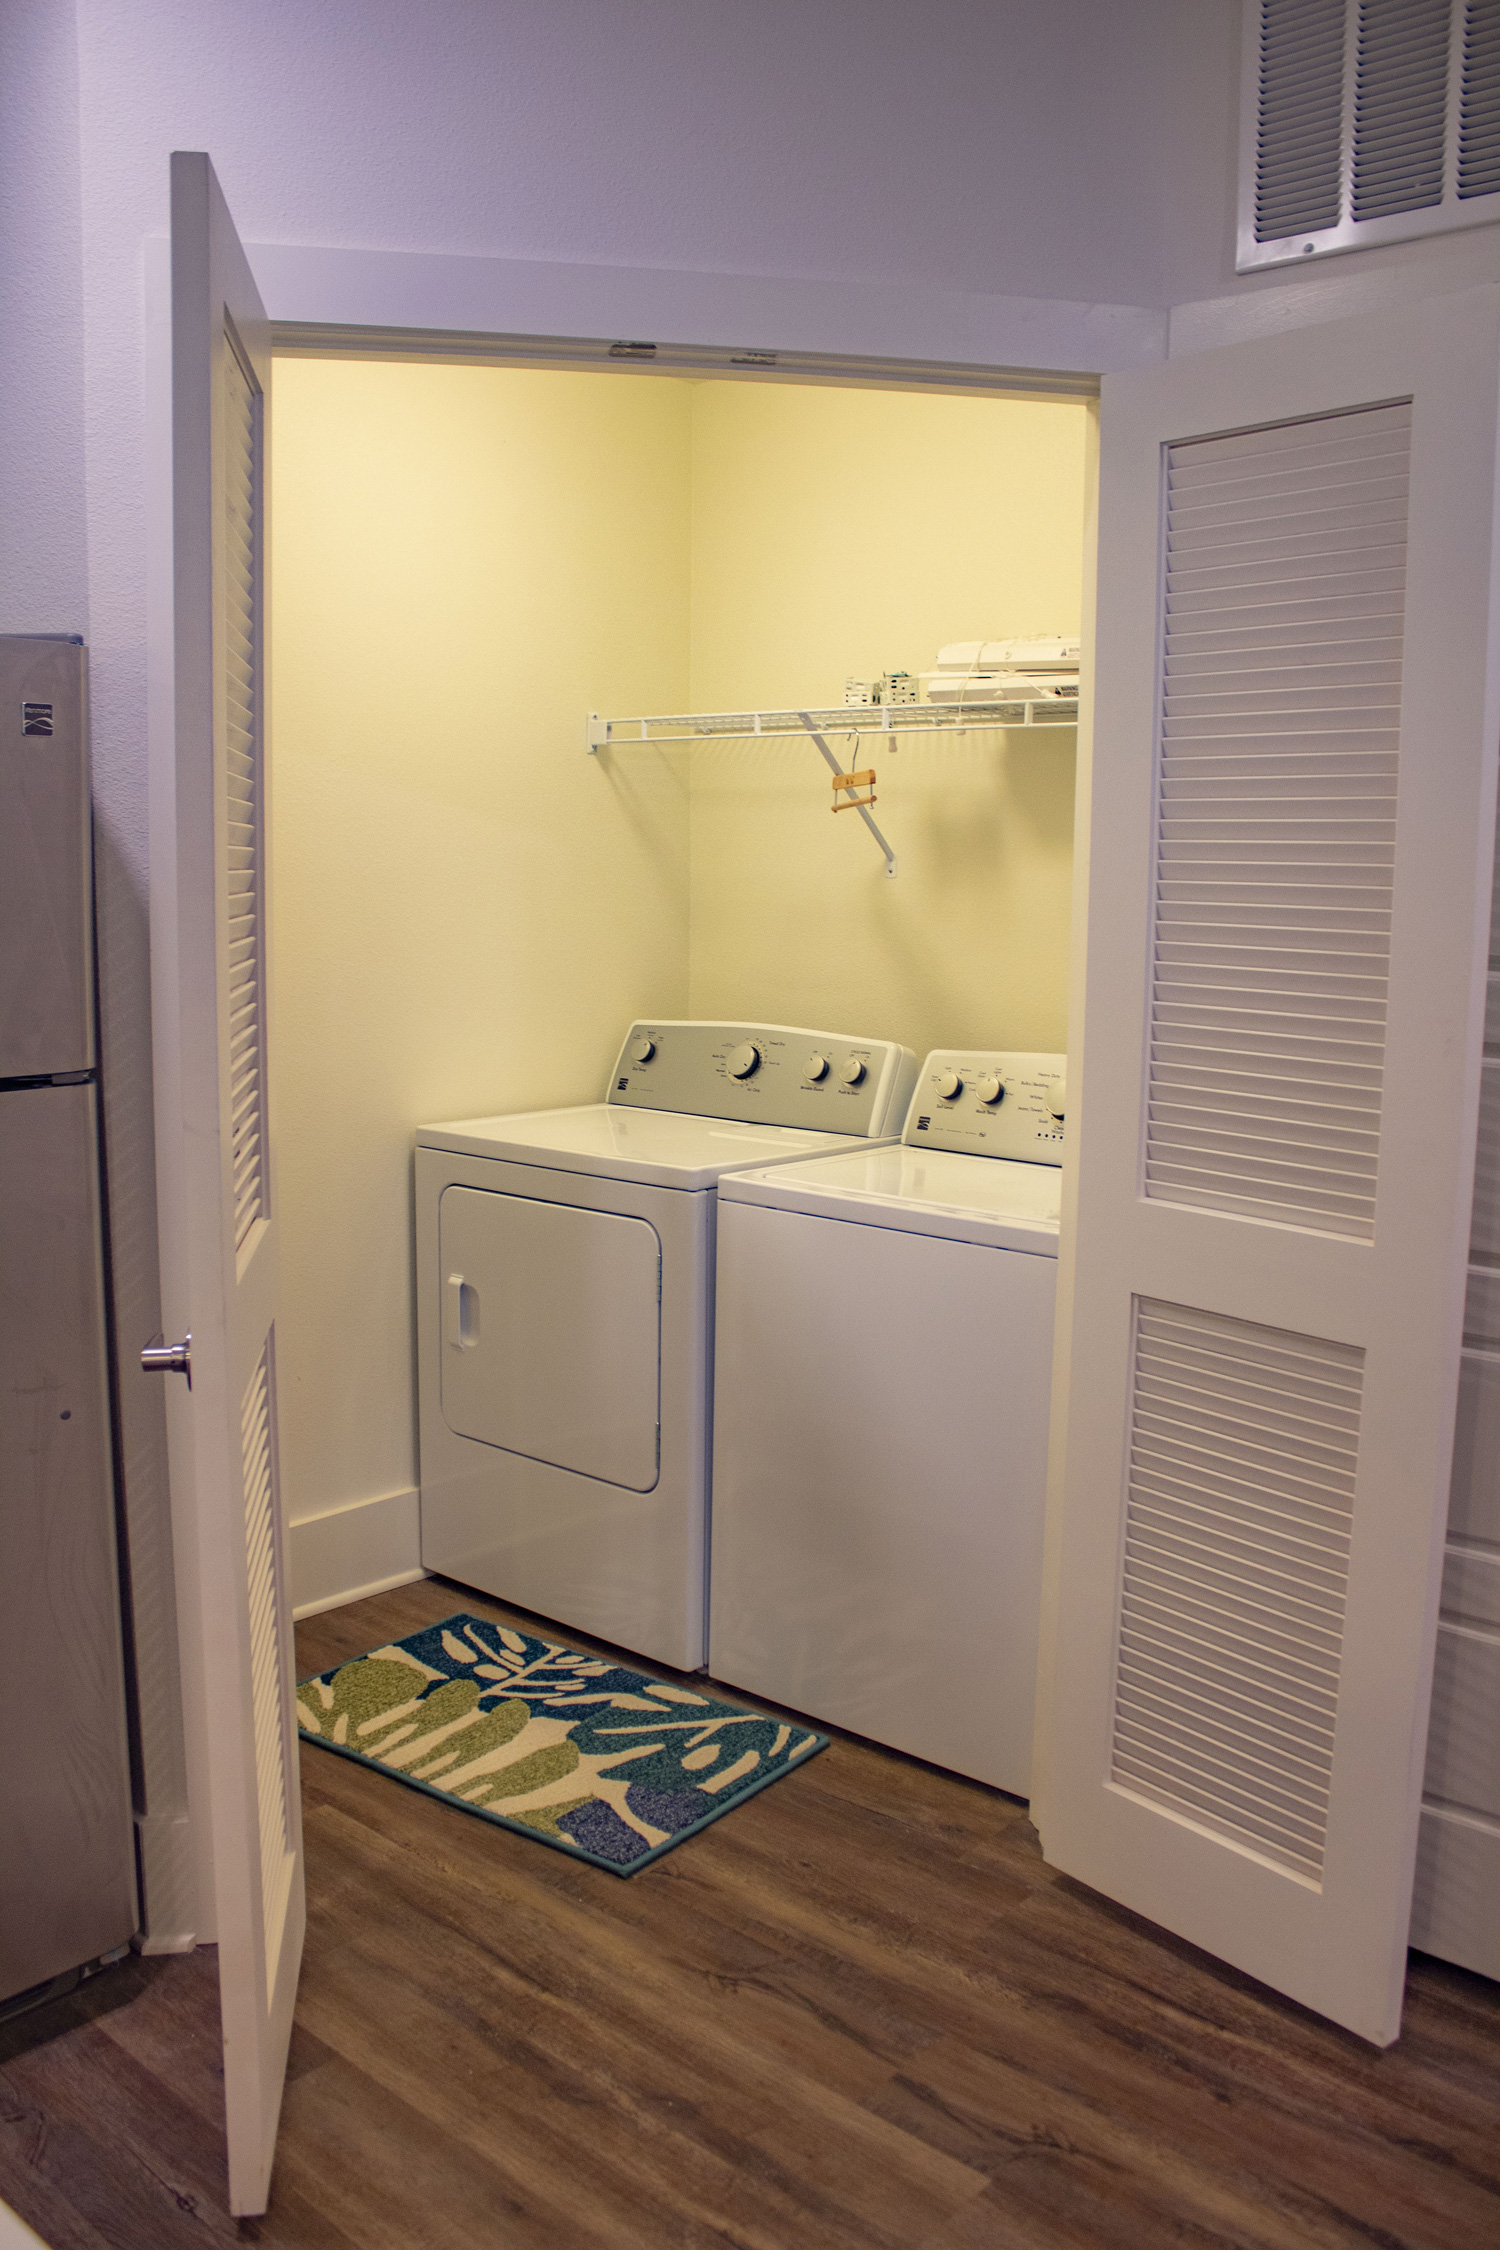 Washers and Dryers at The Palms at Juban Lakes Apartments in Denham Springs, Louisiana